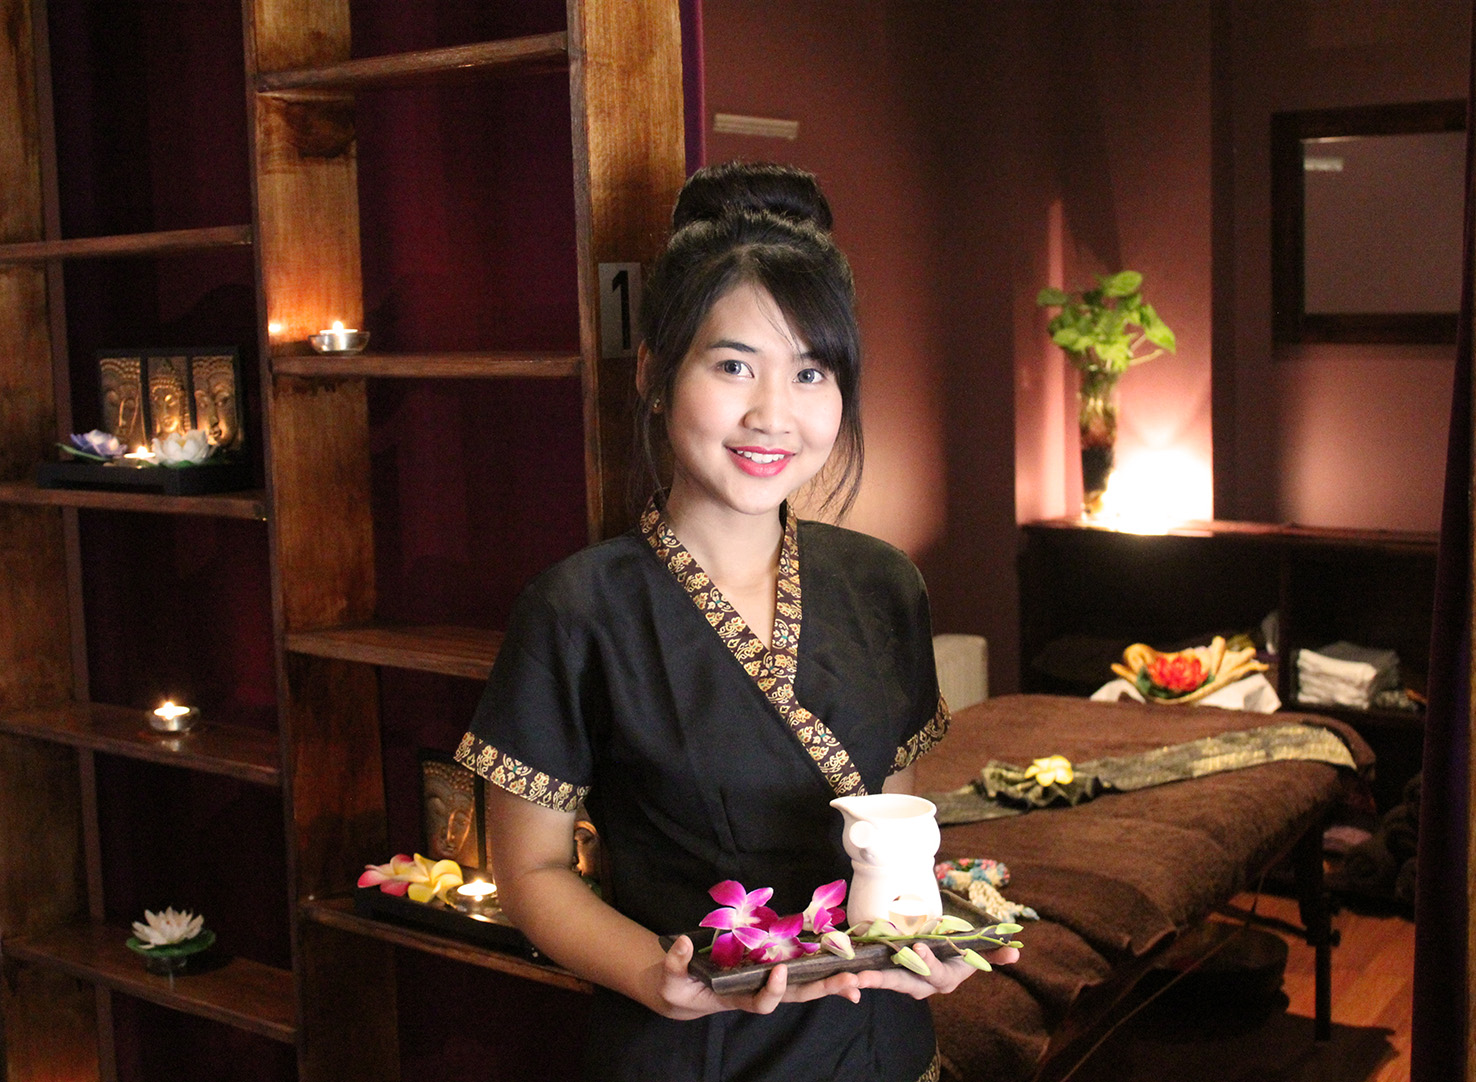 Established Thai Massage & Spa for sale, Open 7 Days, Located 5 minutes from CBD